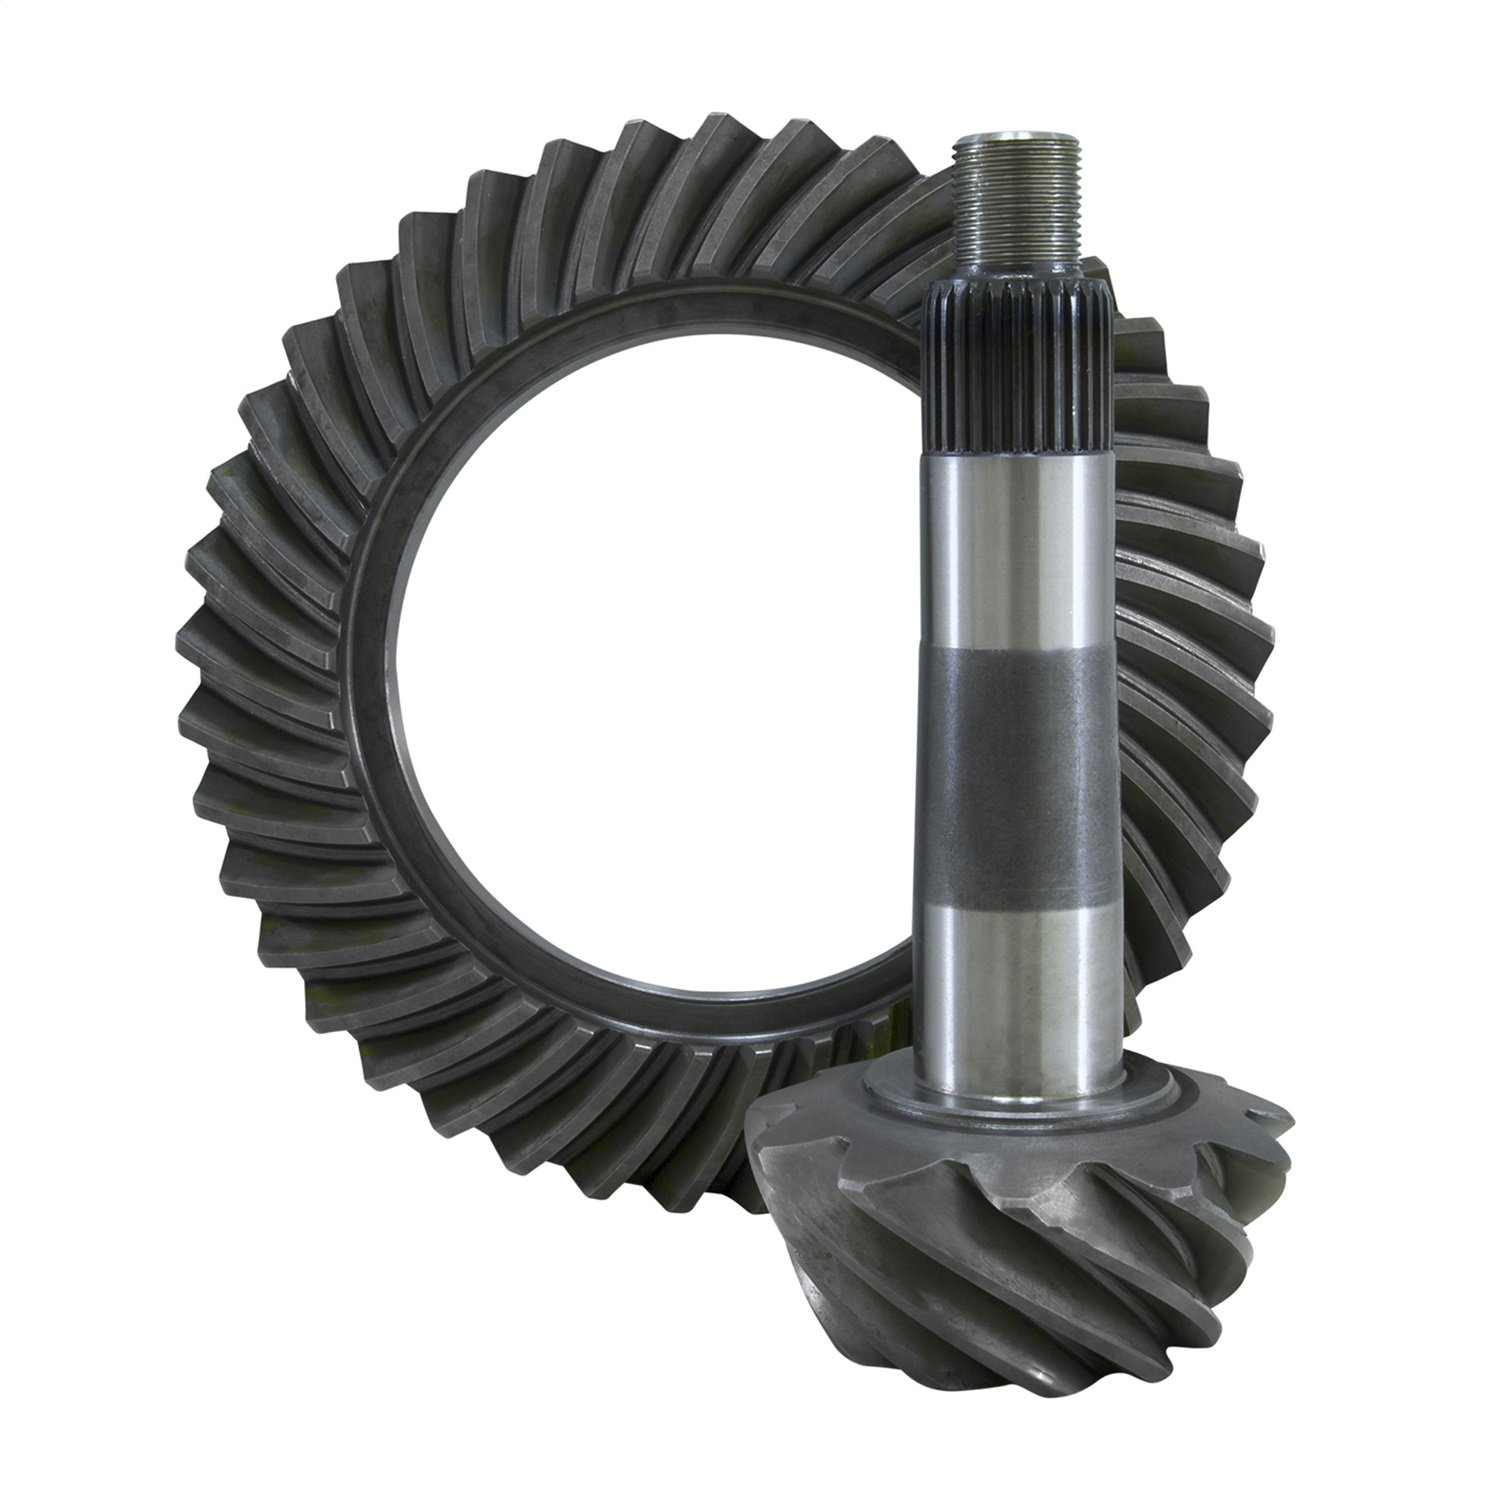 USA Standard Gear (ZG GM12T-373) Ring & Pinion Gear Set for GM 12-Bolt Truck Differential by USA Standard Gear